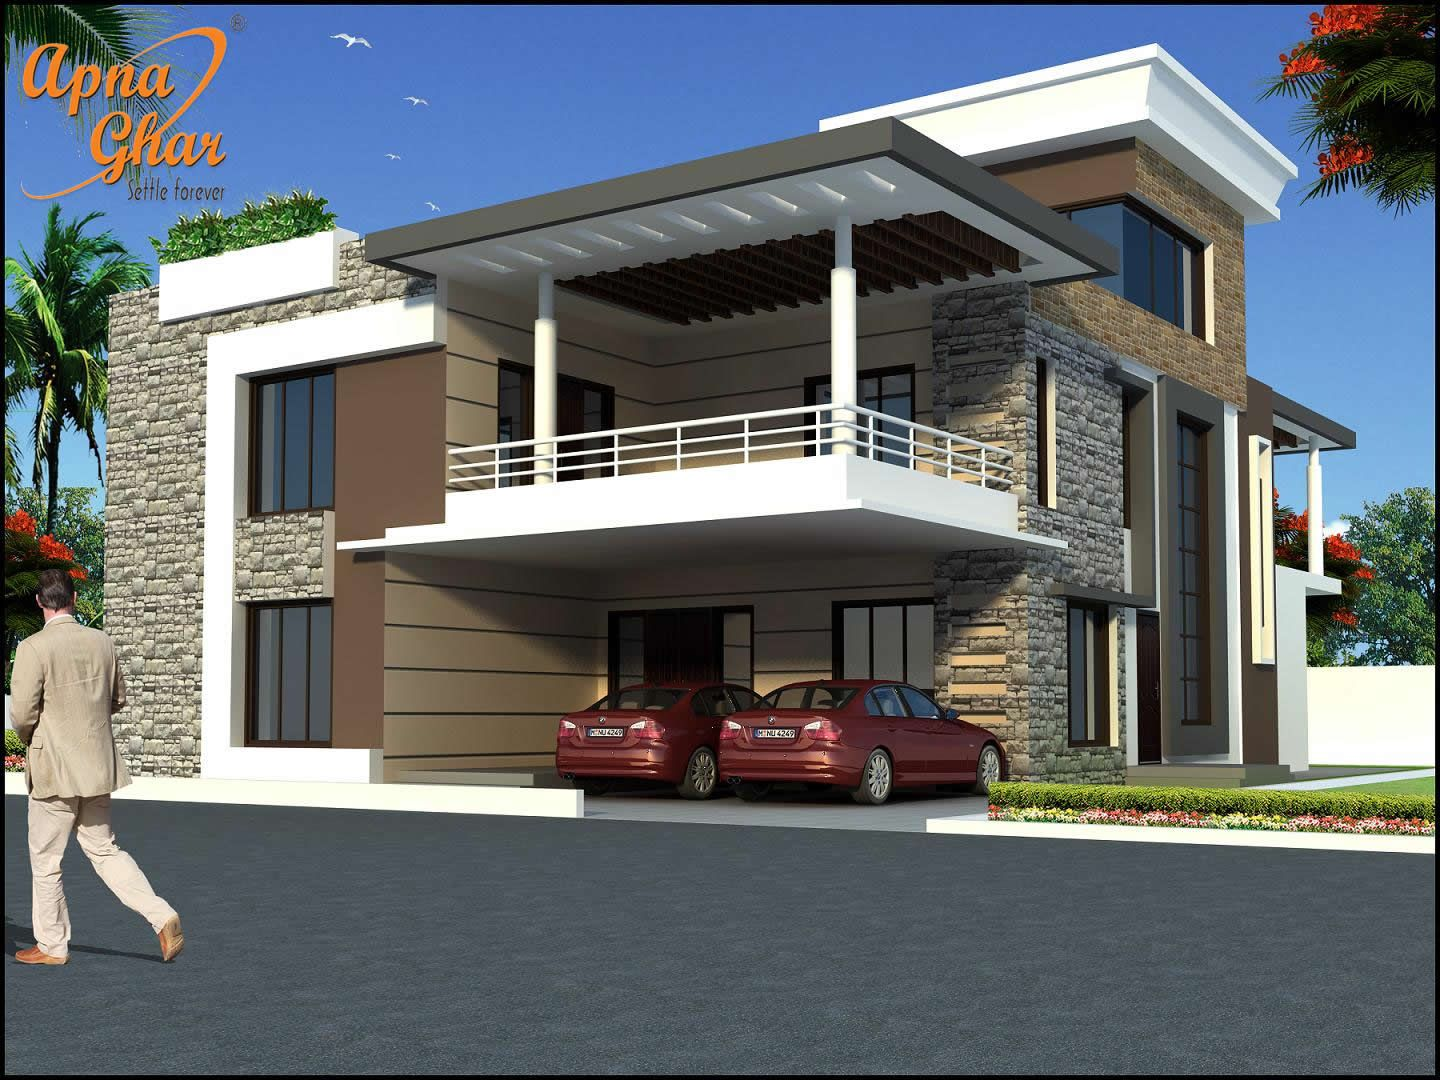 Duplex 2 floor homes click here - Duplex home elevation design photos ...